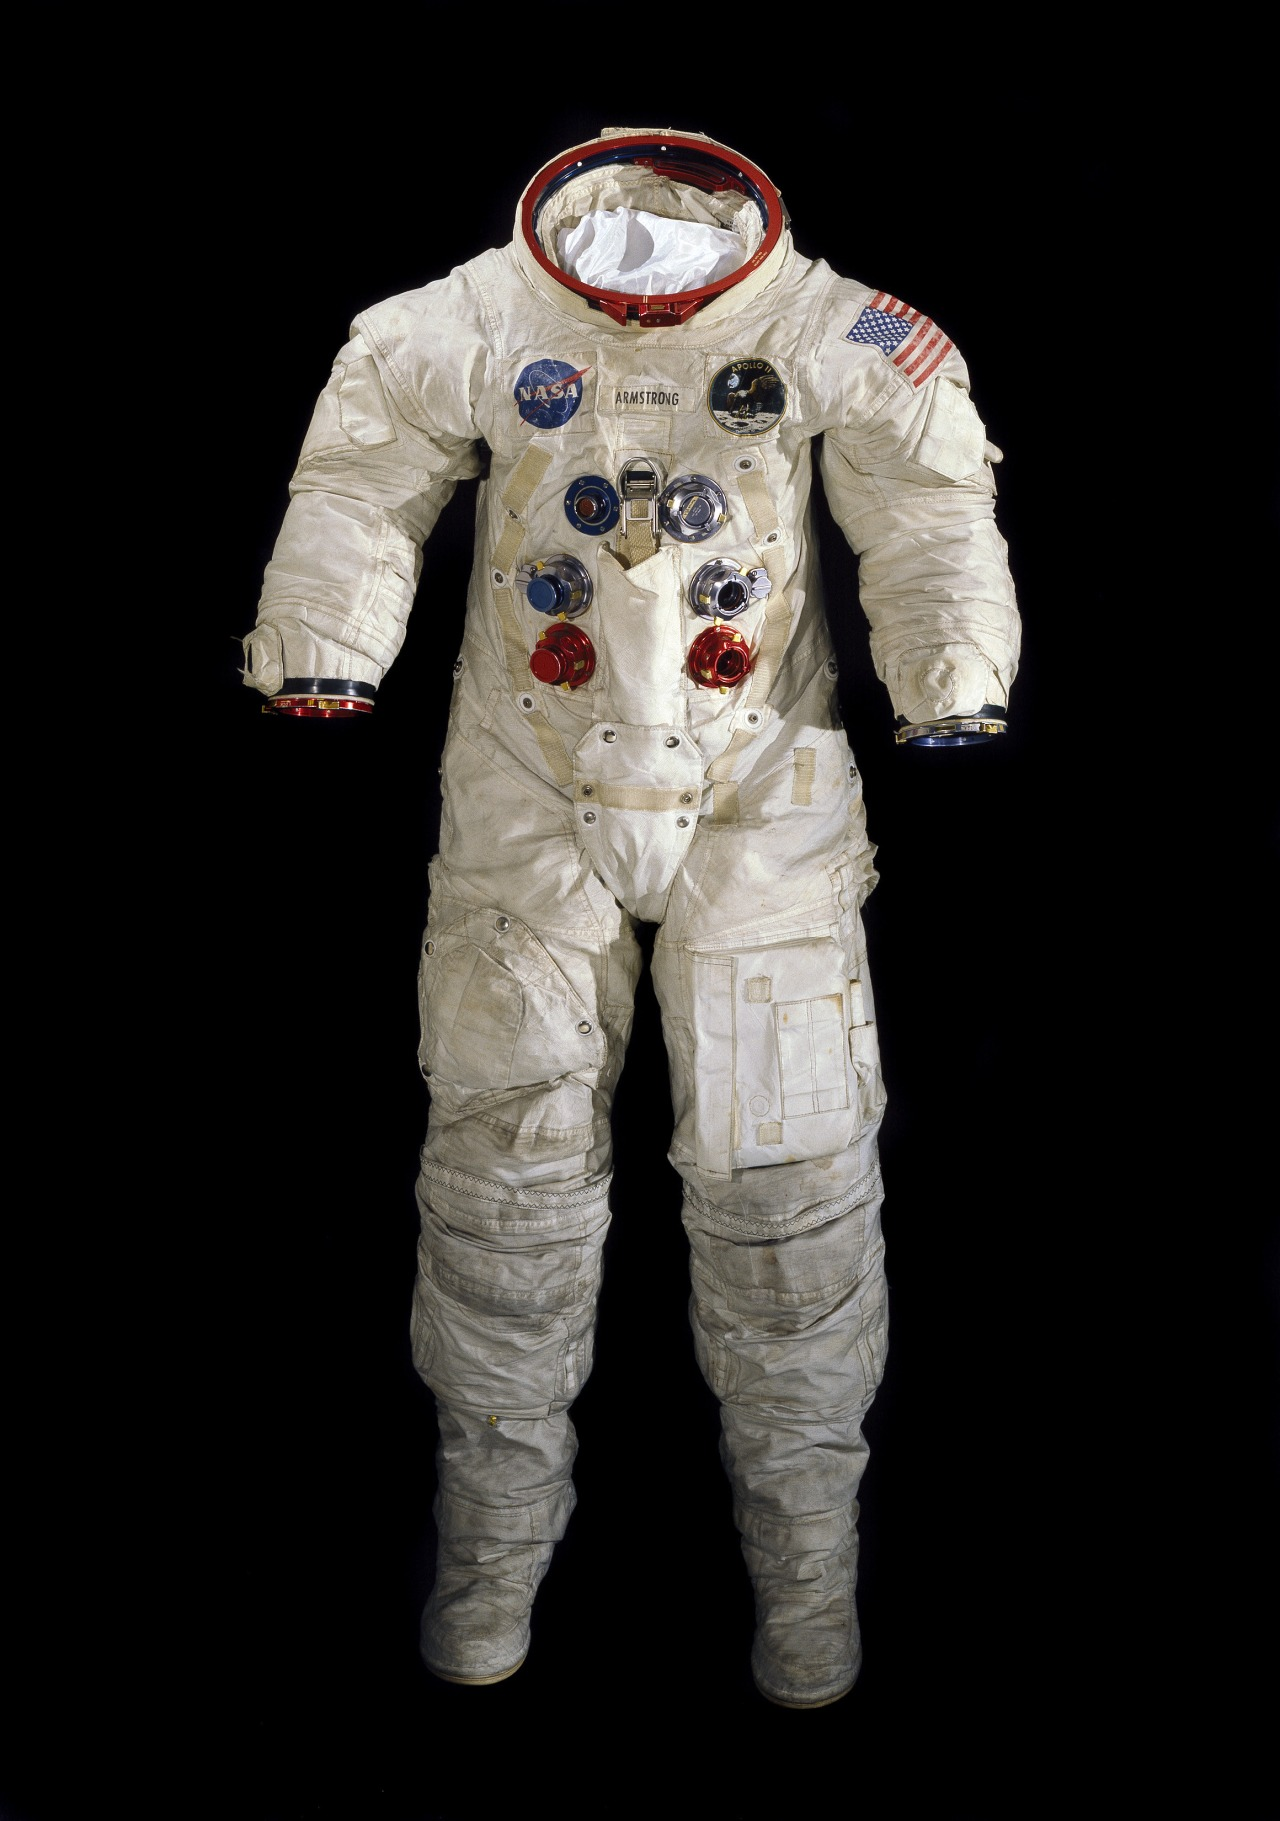 Neil Armstrong's spacesuit worn on the Apollo 11 mission, which landed the first man on the moon on July 20, 1969